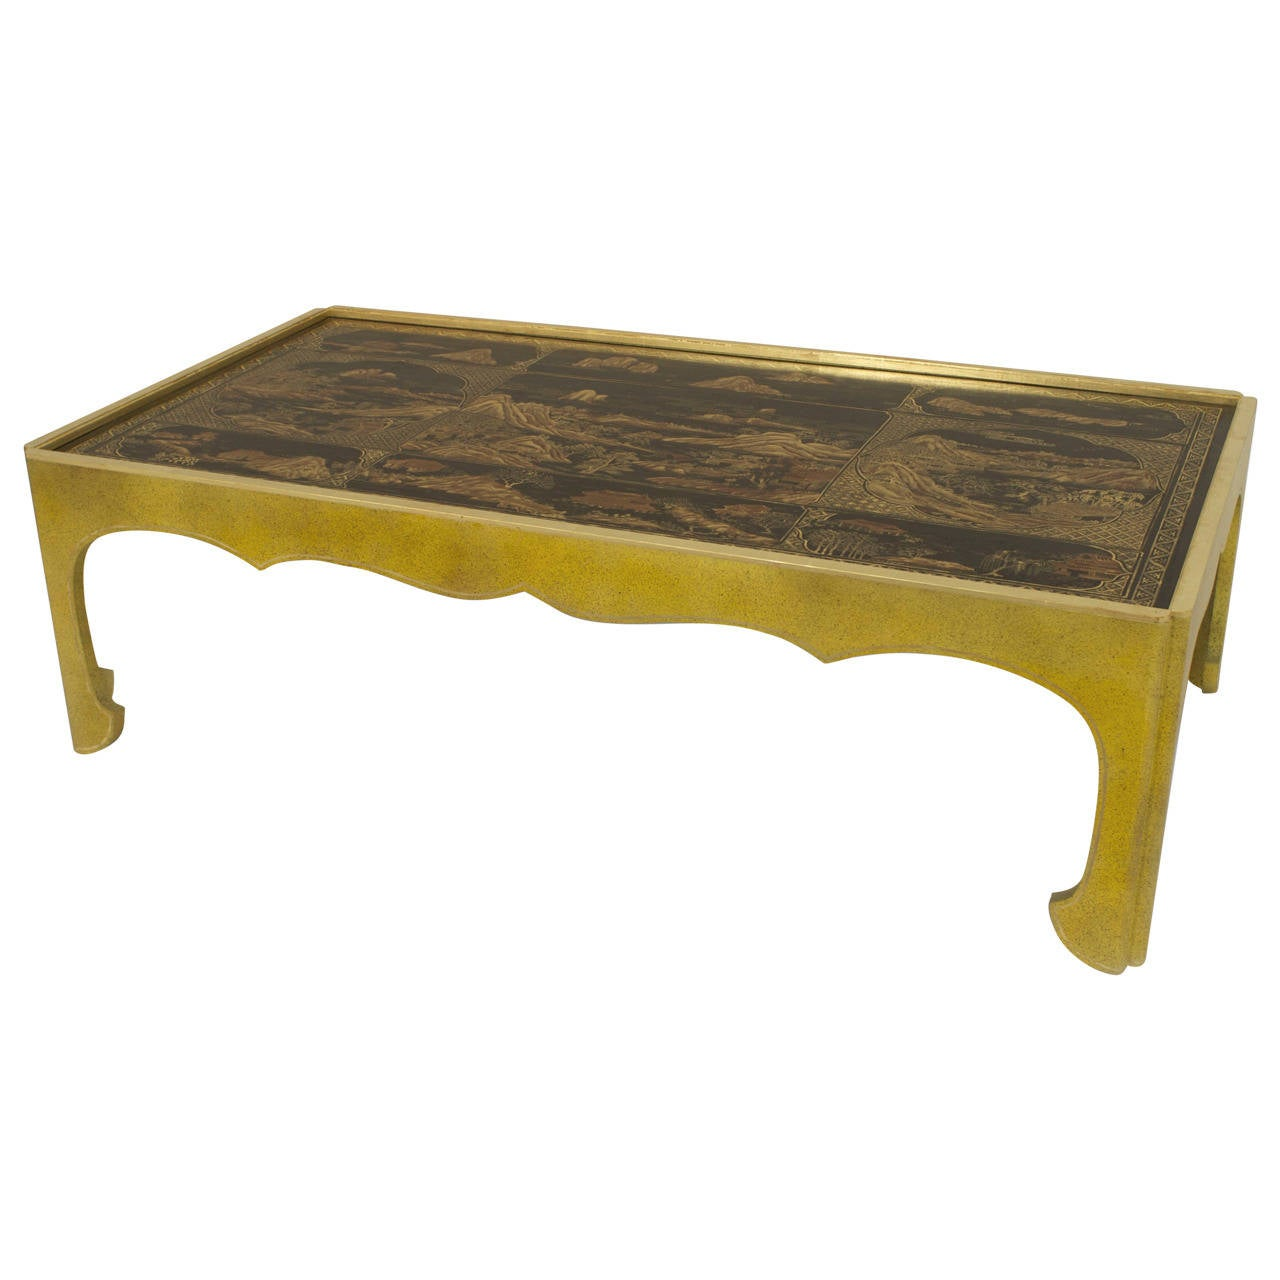 Modern Parcel-Gilt Celadon Coffee Table with Inset Chinoiserie Lacquer Top